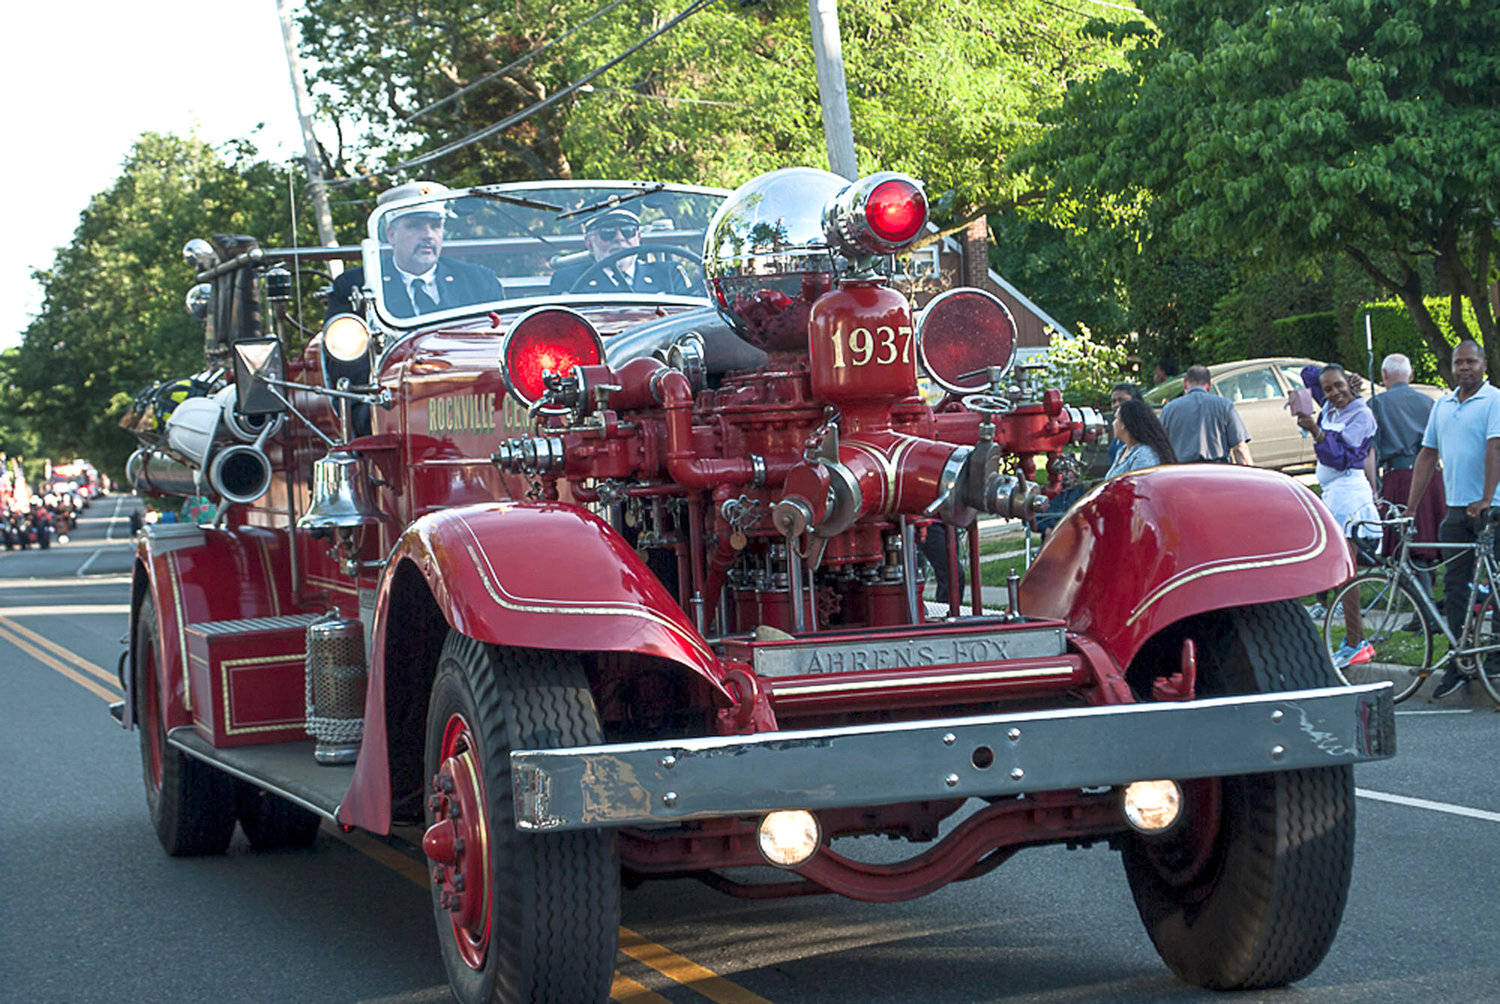 The Rockville Centre Fire Department featured a vintage truck at the parade.